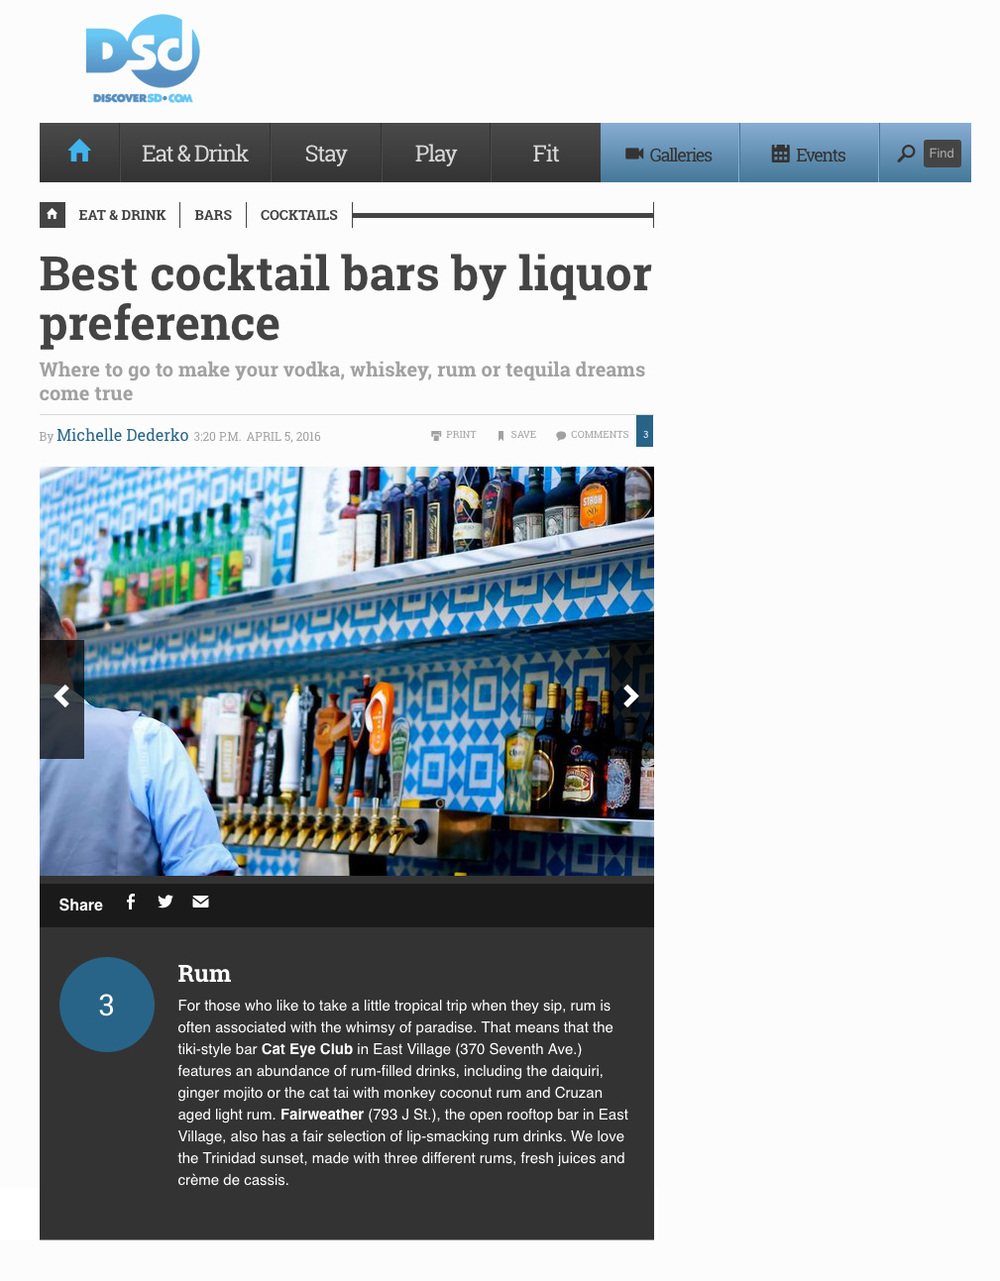 Best Cocktail Bars by Liquor Preference